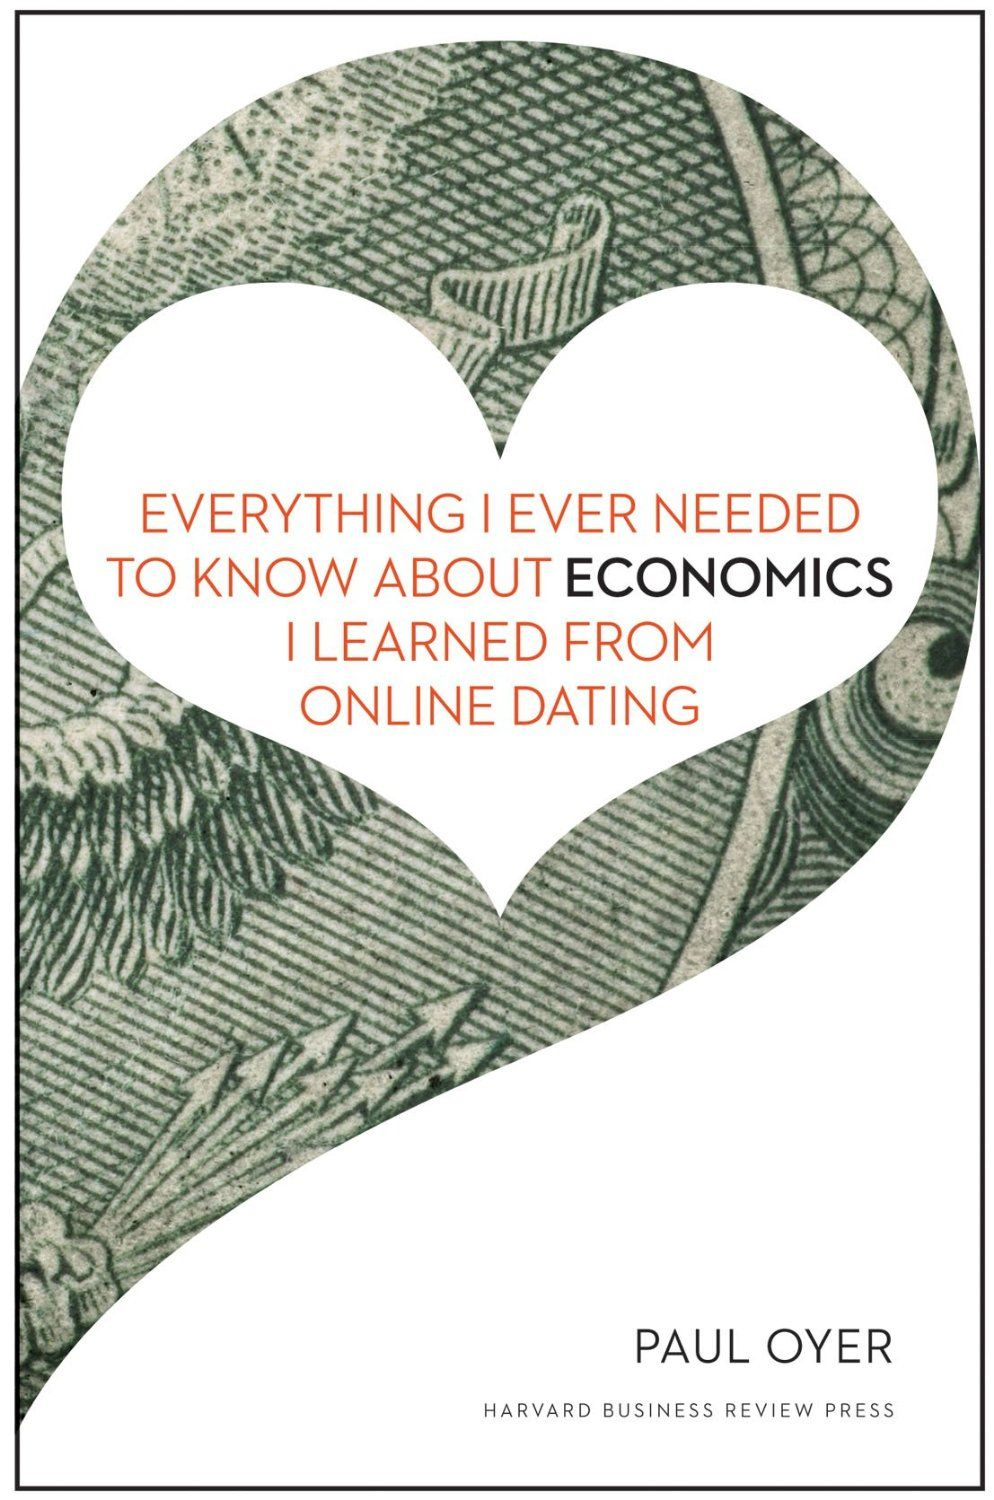 Everything I Ever Needed To Know About Economics I Learned From Online Dating By Paul Oyer 14 51 Http Www Amazon Online Dating Economics Economics Books